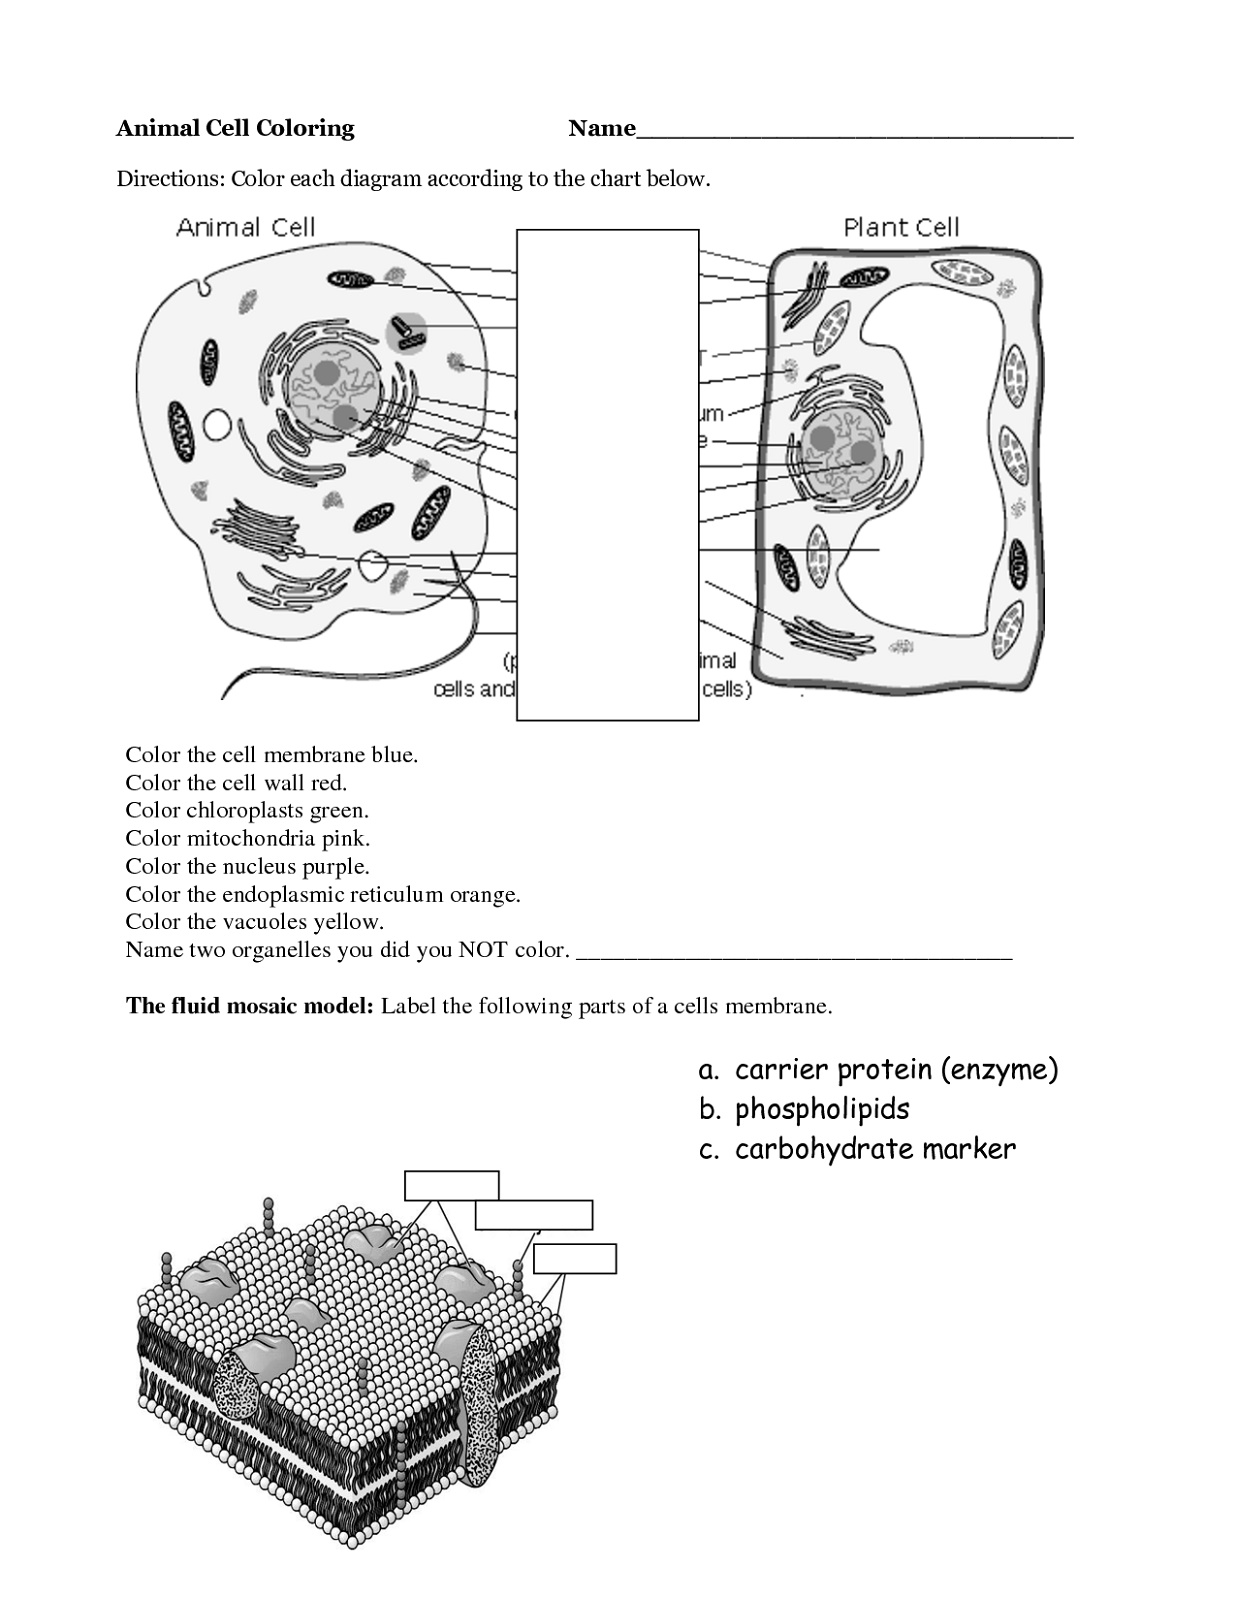 Animal And Plant Cell Coloring